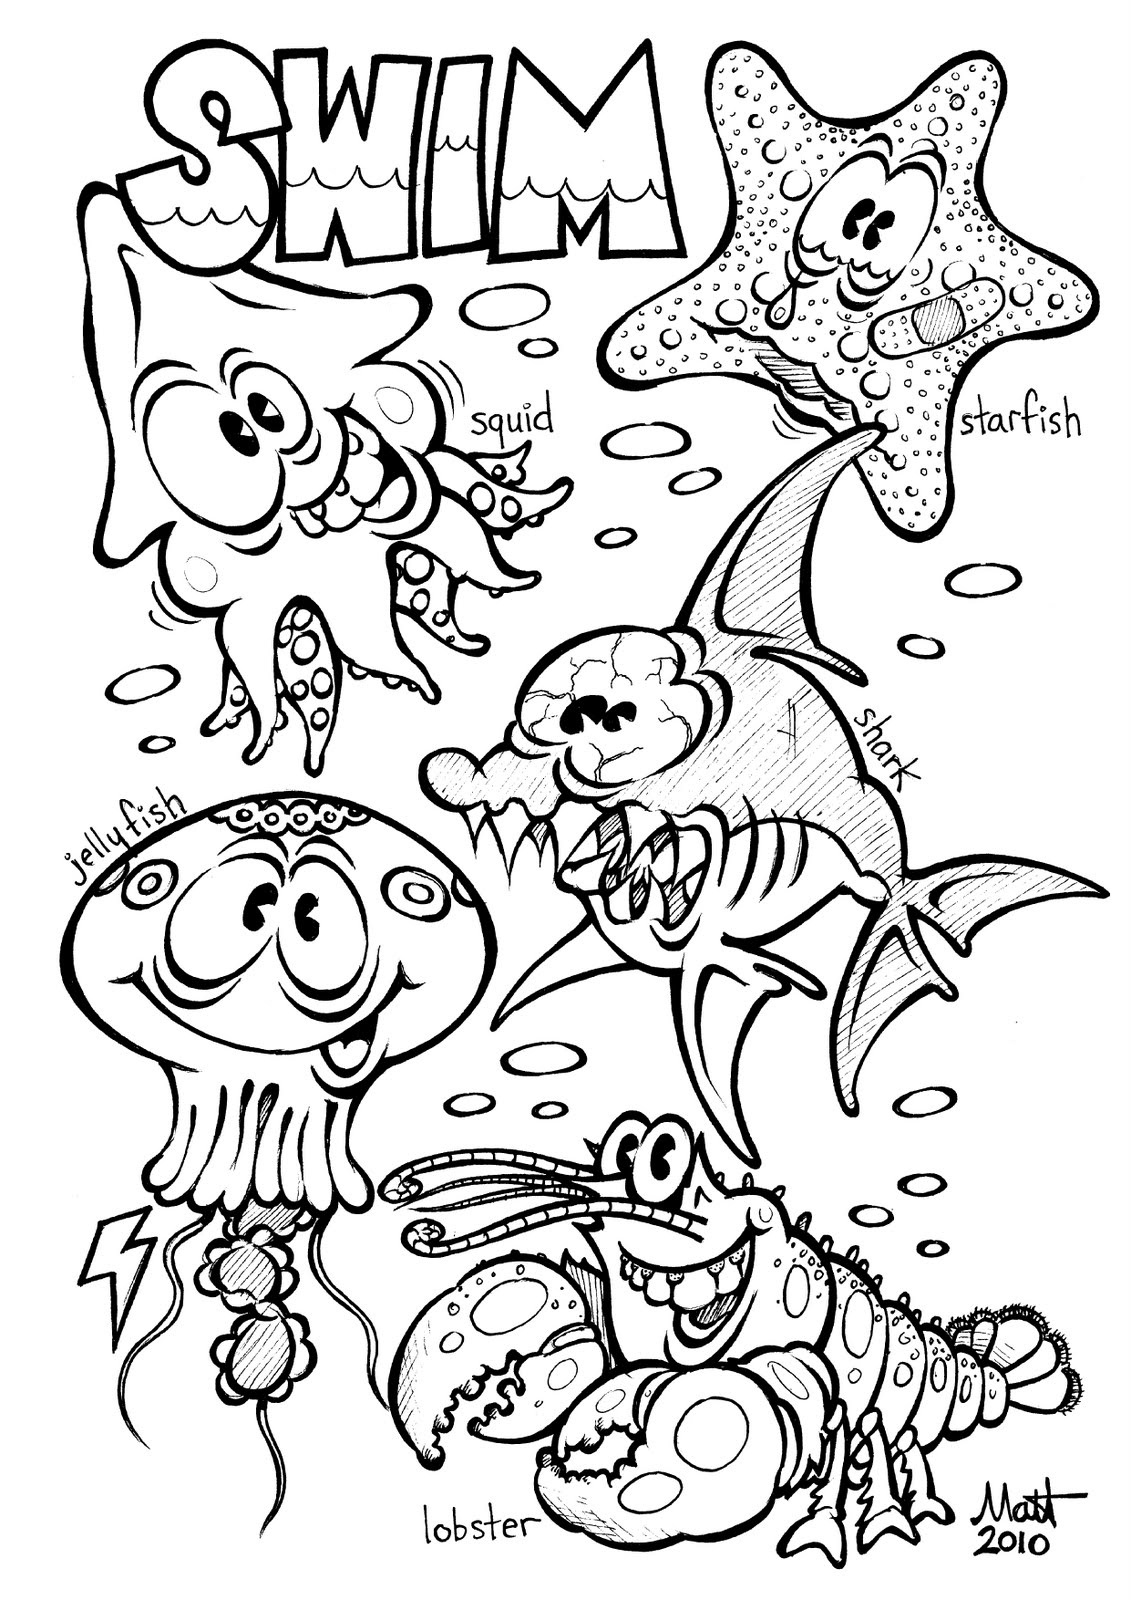 ocean wildlife coloring pages - photo #1